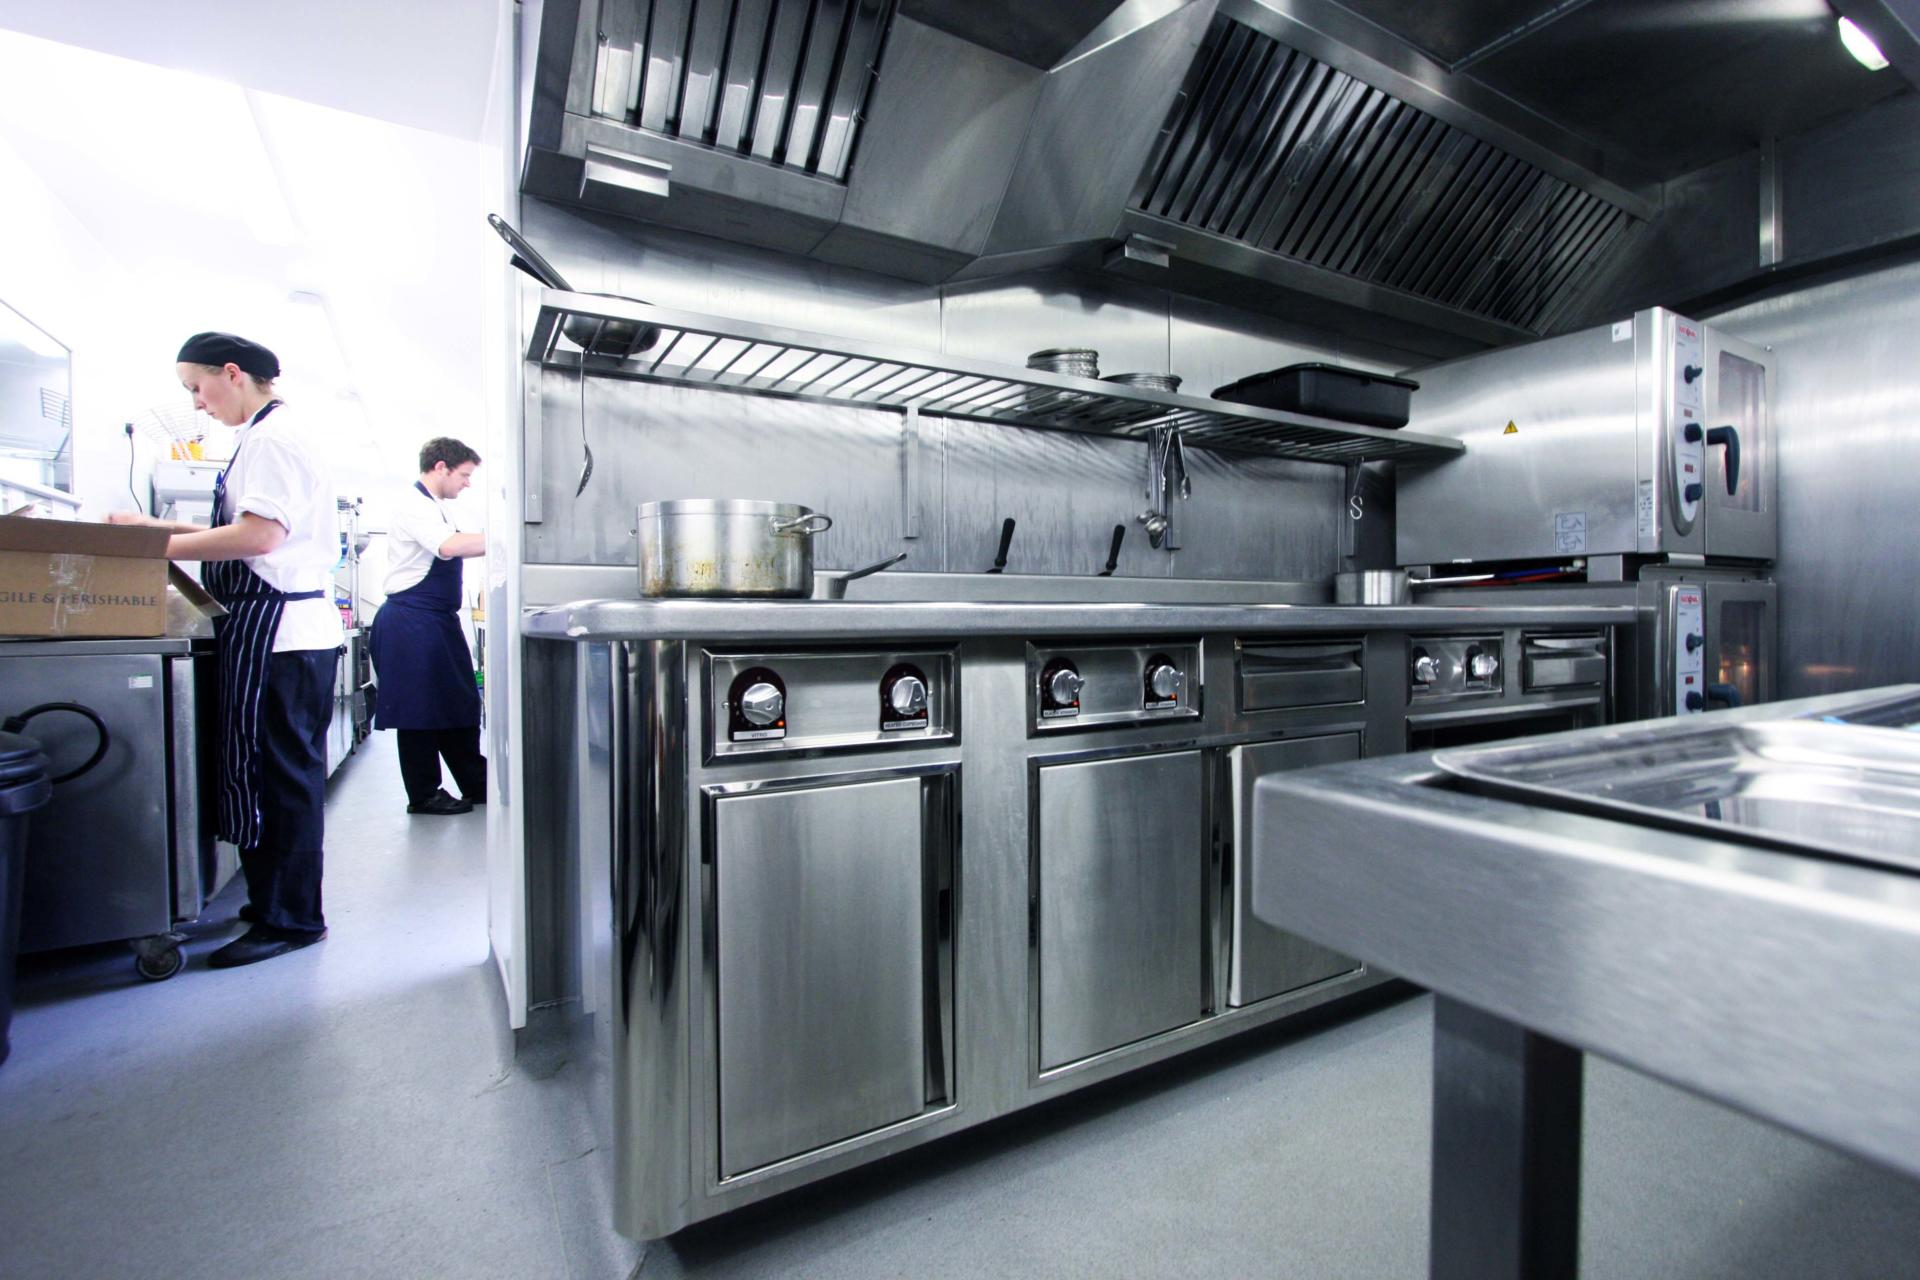 curlew_robertsbridge_kitchen_spacecatering_9